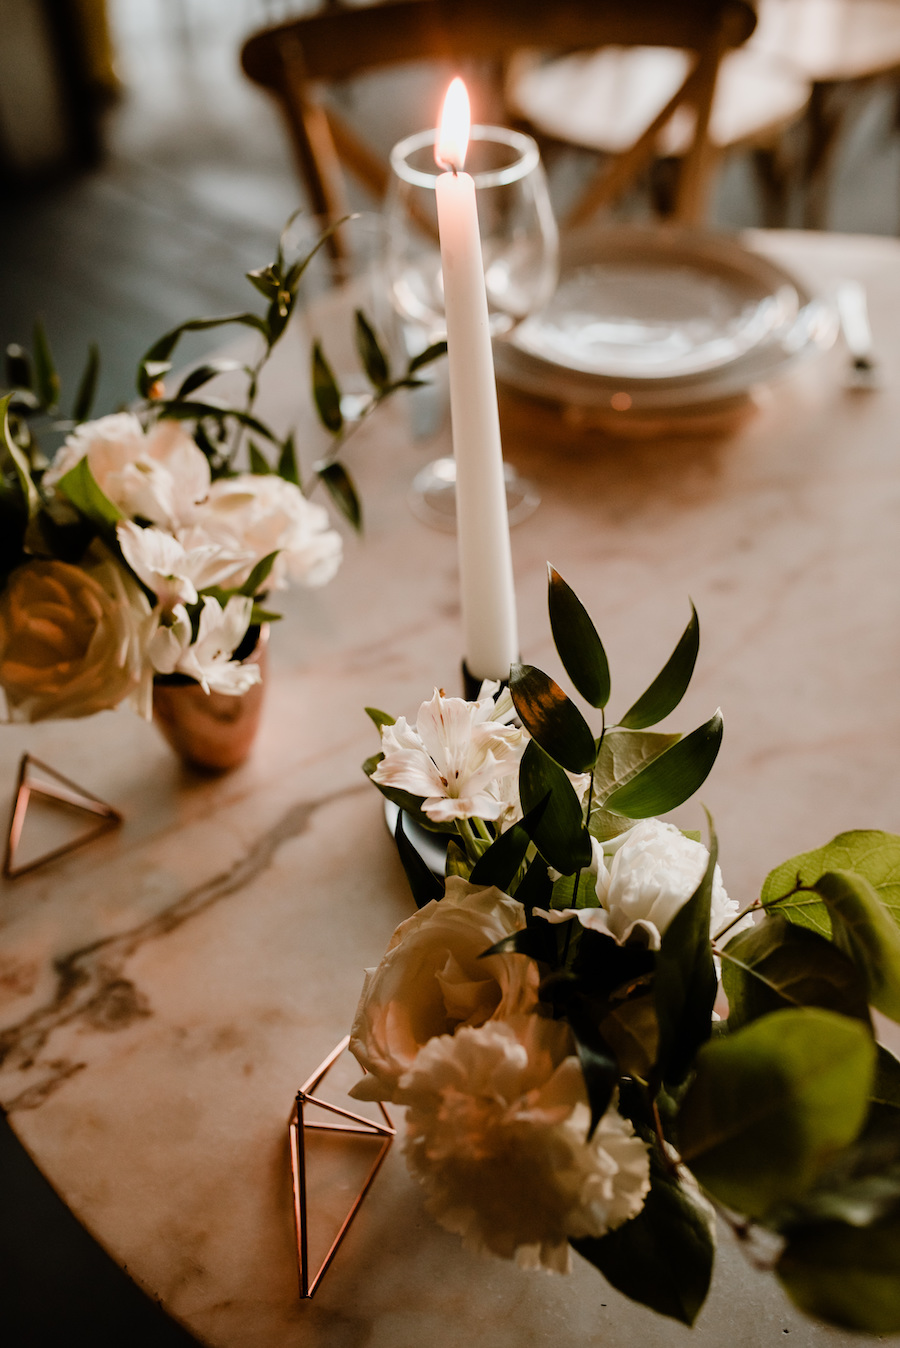 candle and floral bouquets on table at wedding reception